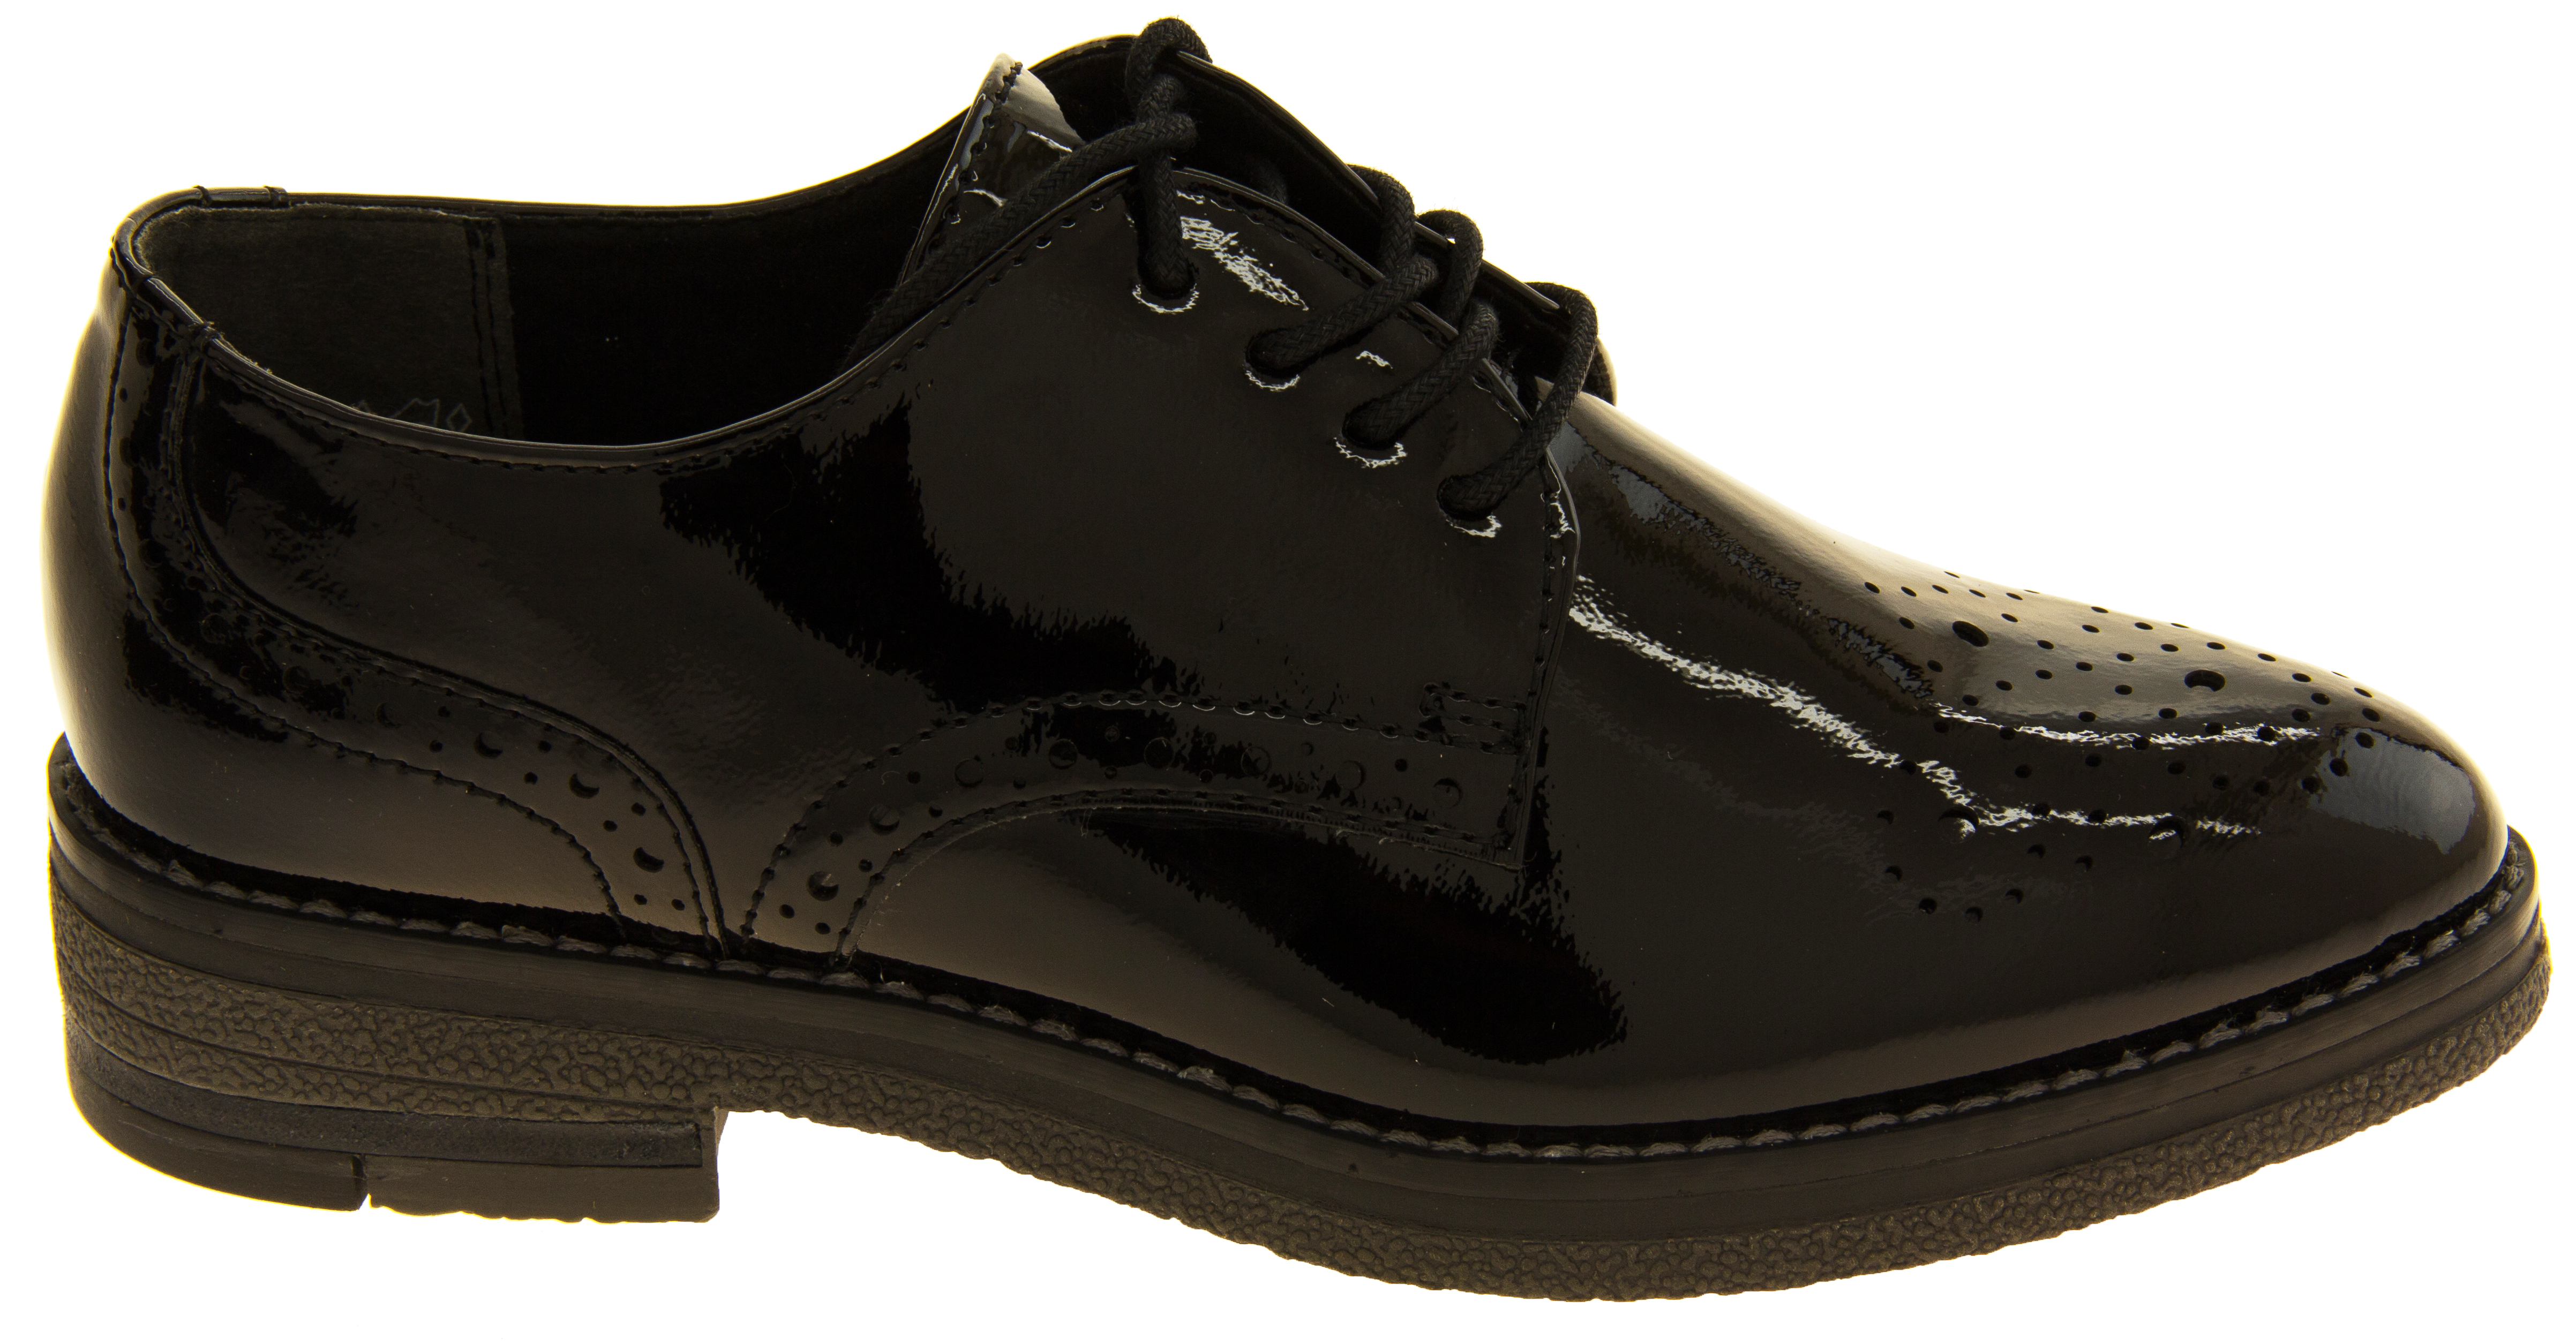 Black Brogues Shoes Womens